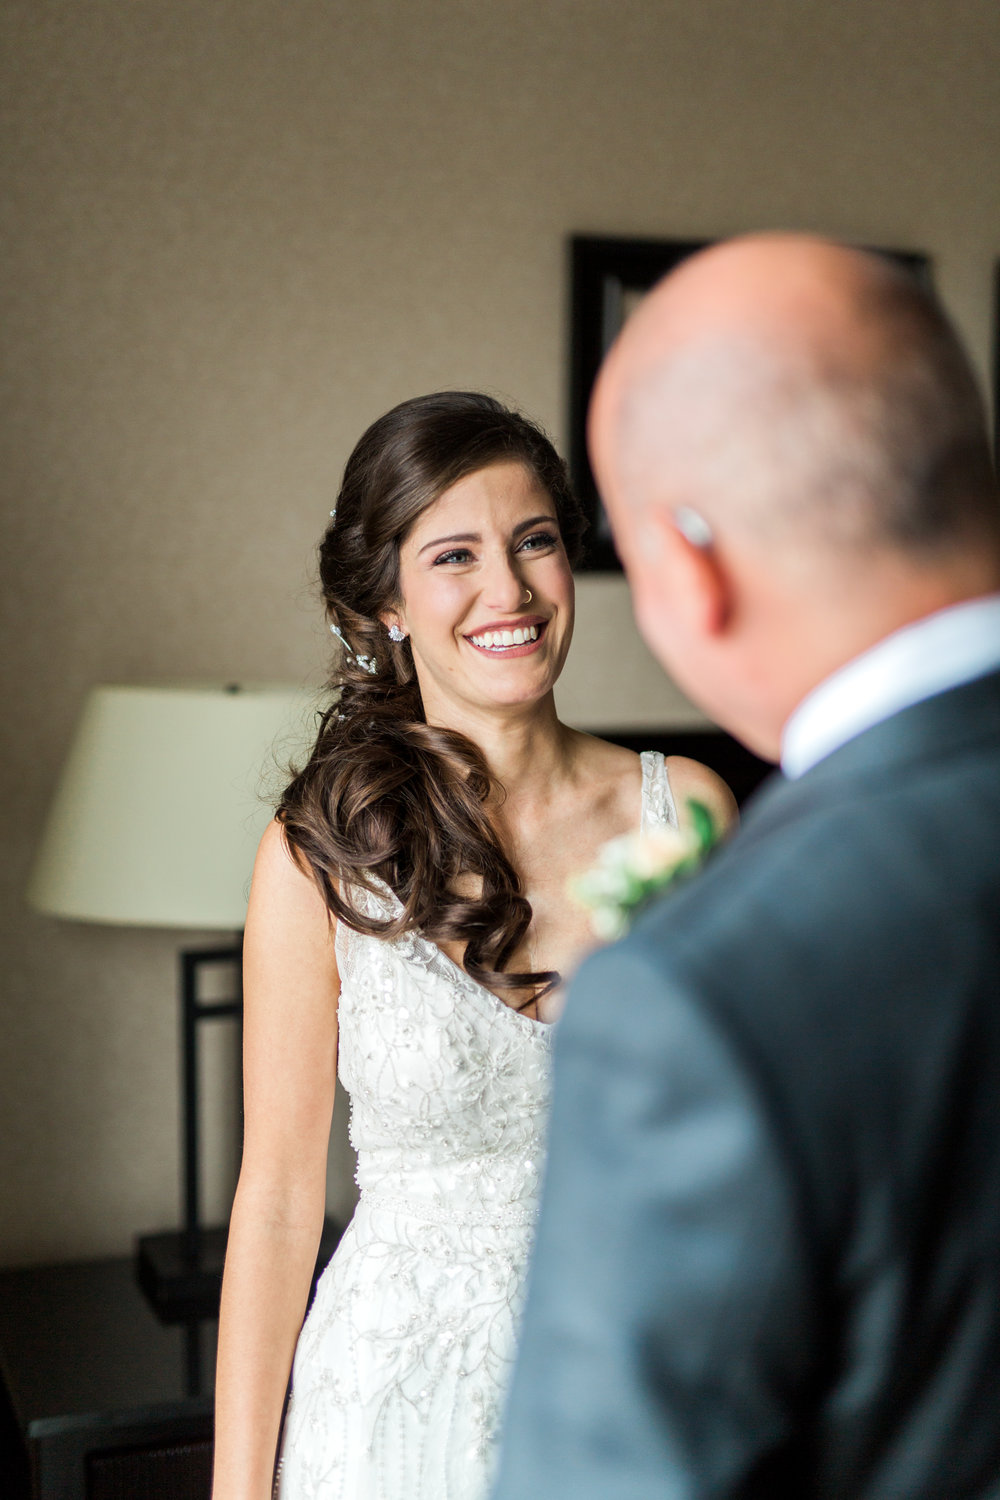 Amir-Golbazi-Danielle-Giroux-Photography_Toronto-Wedding_Cedarwood_Rachel-Paul_113.jpg